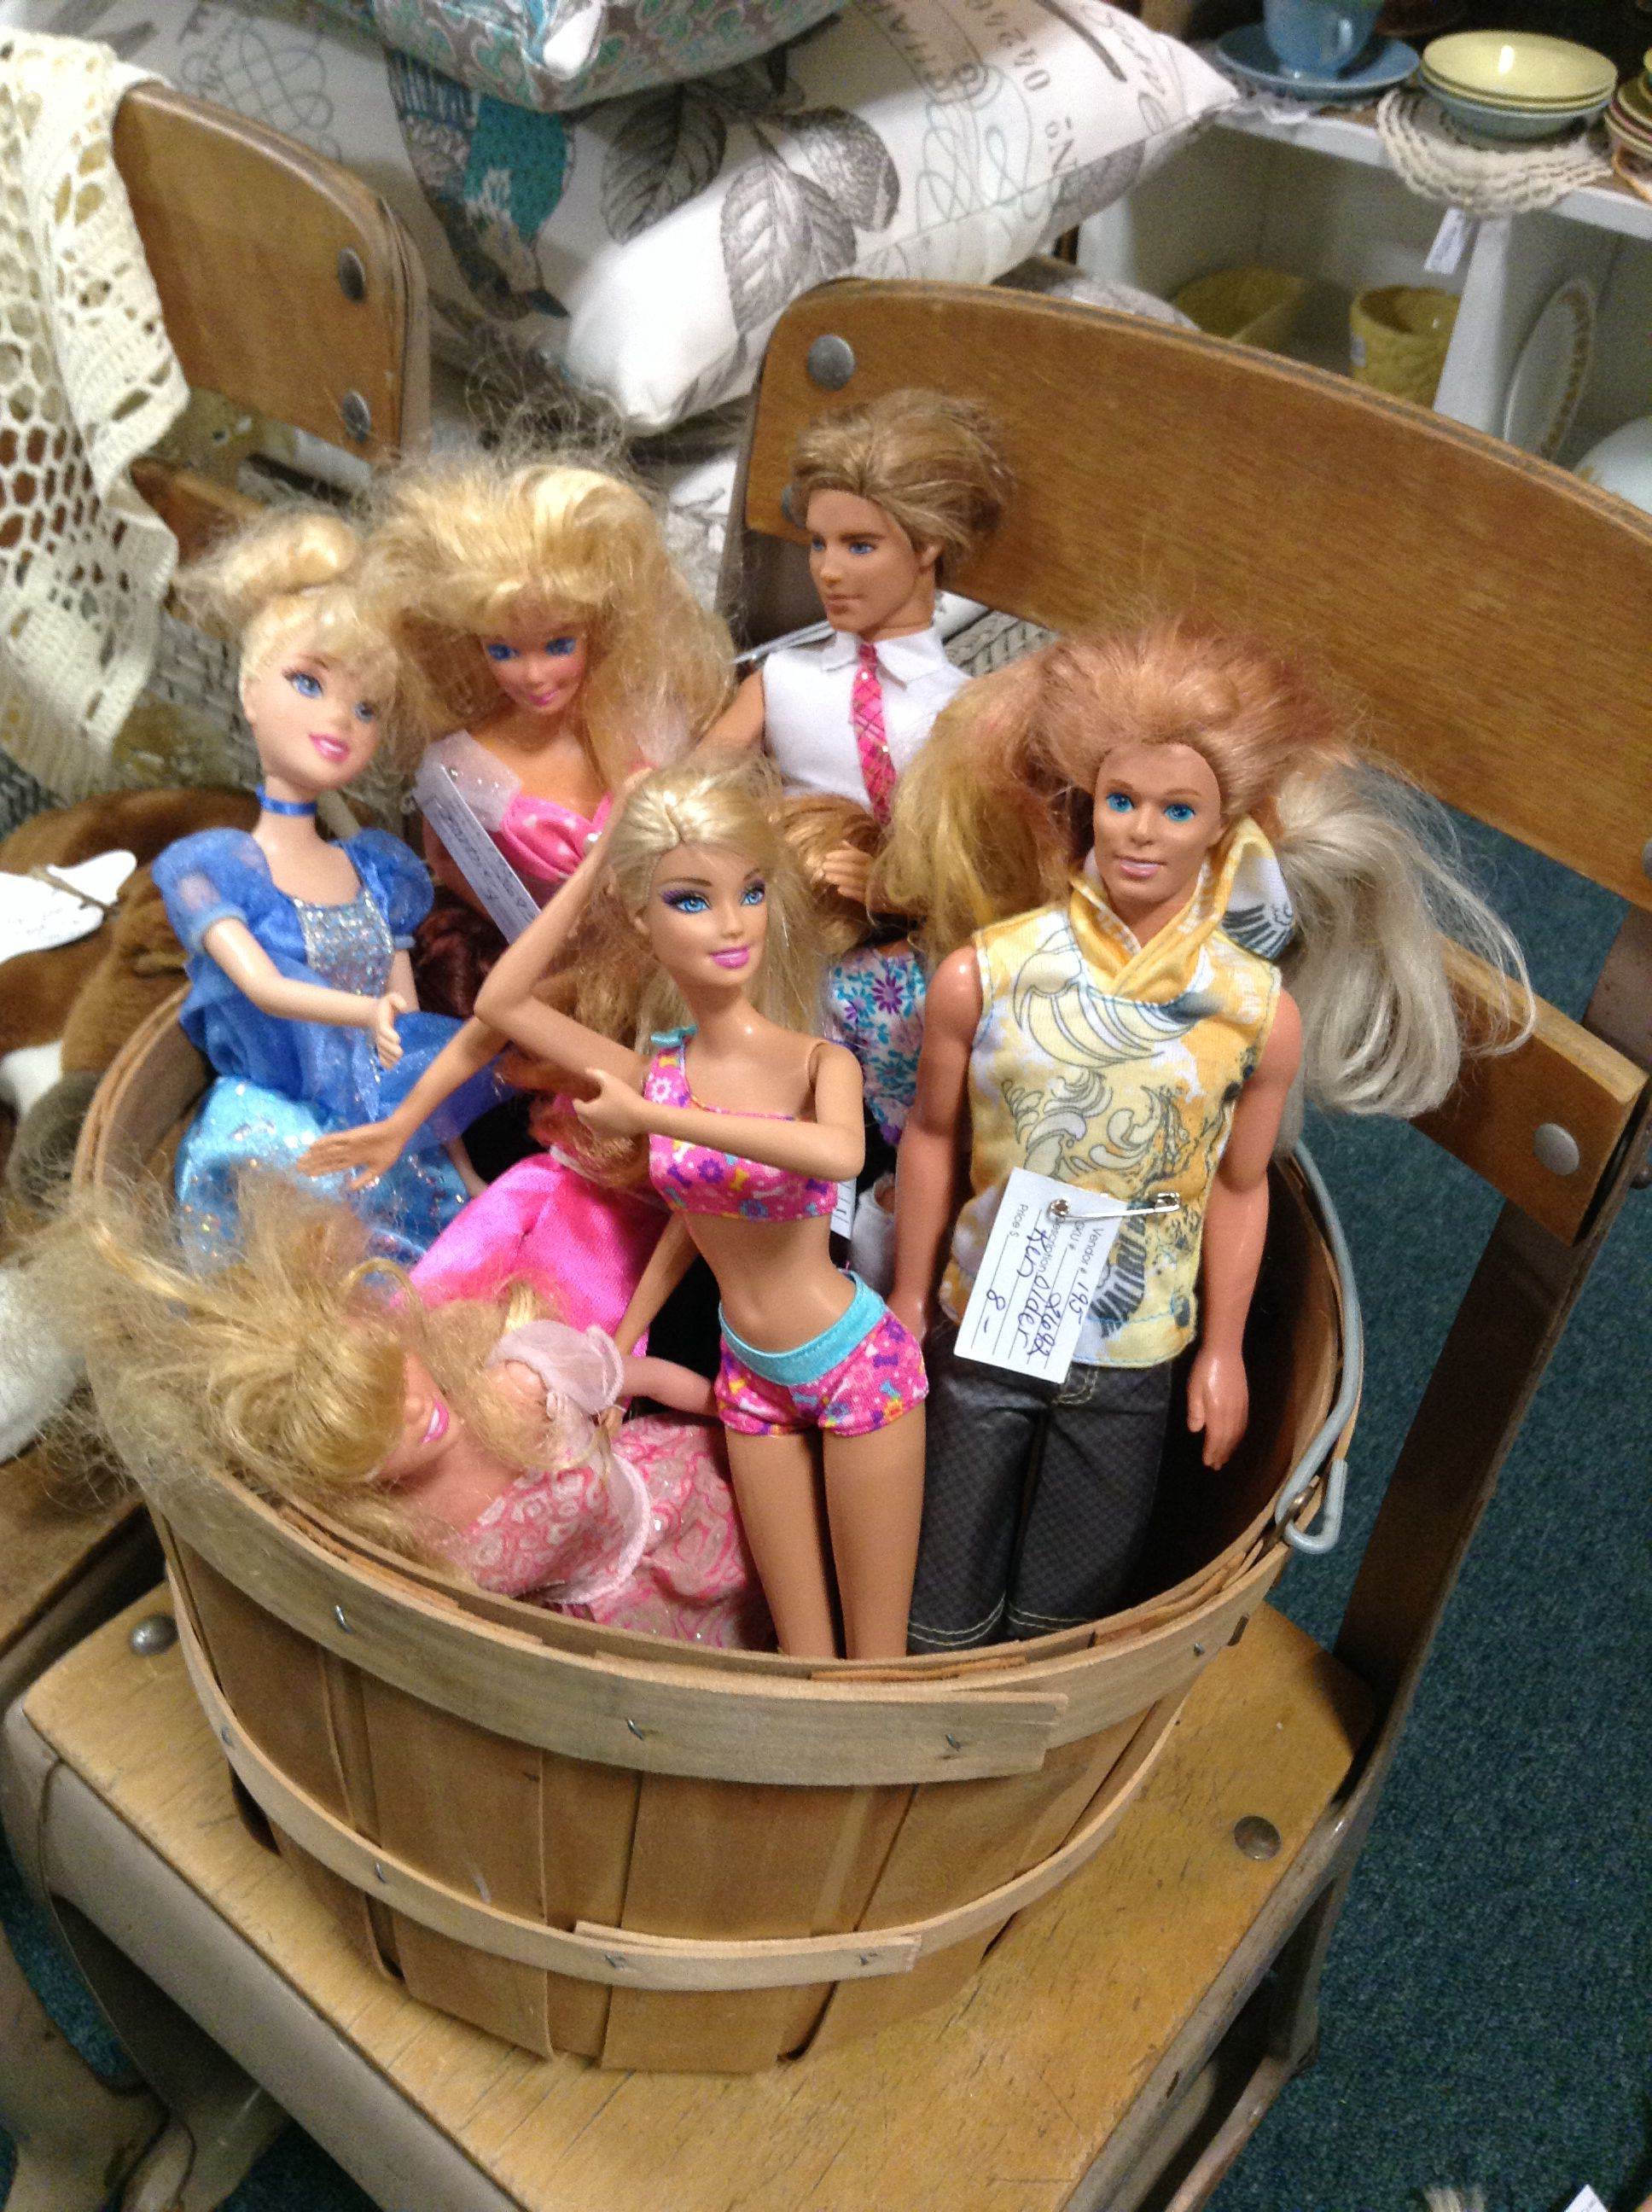 Barbie hot tub party!   Collectibles - Brass Armadillo   Pinterest